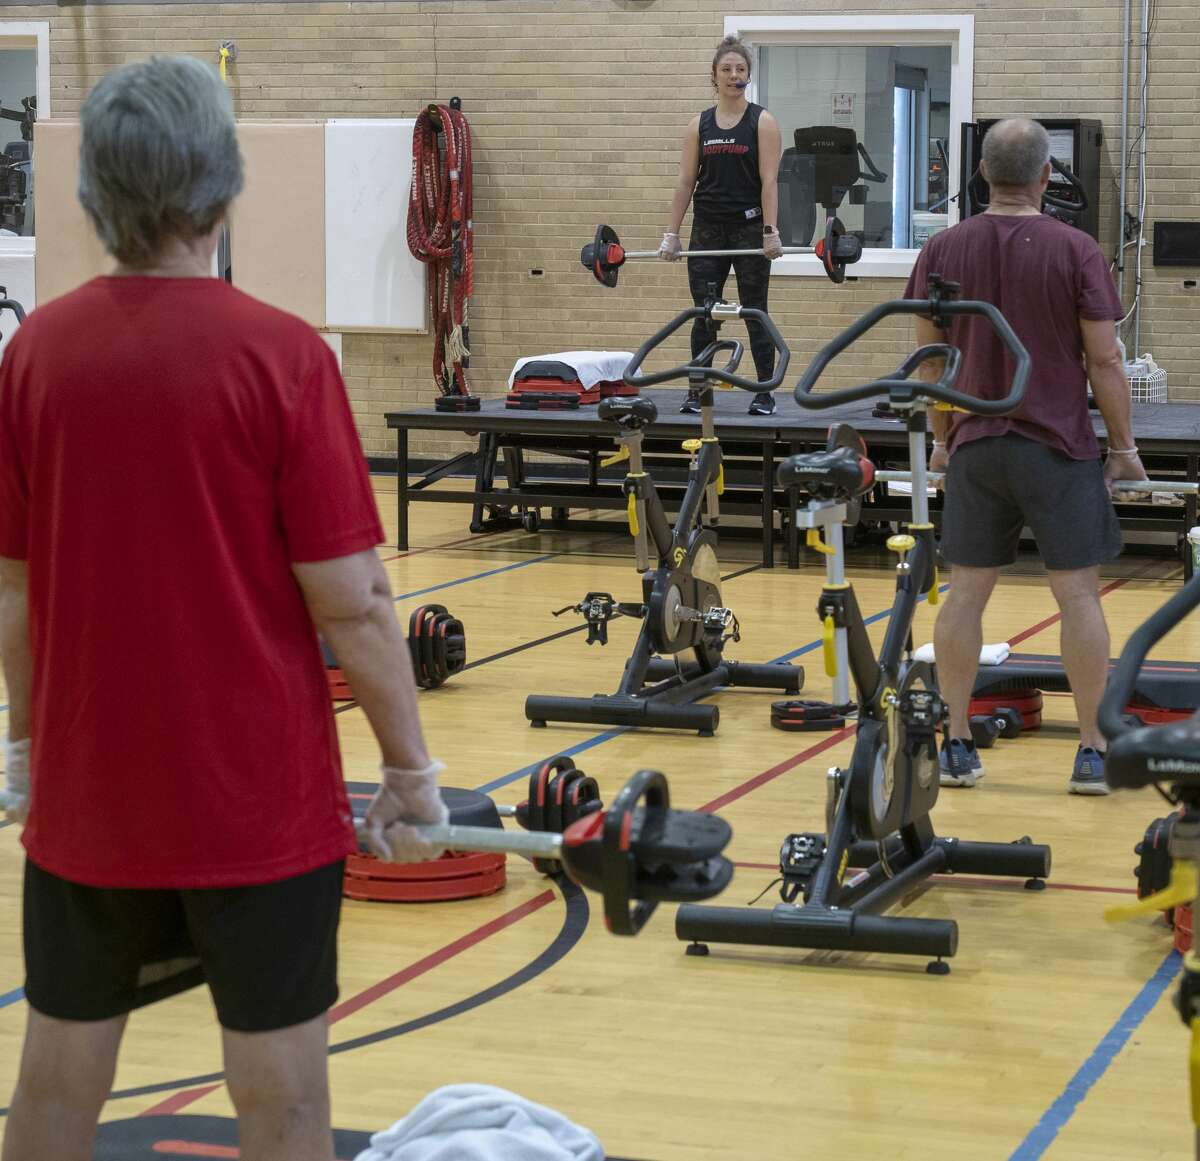 Visitors can try any group exercise class or workout area this week, including Bodypump barbell classes and Zumba. A schedule of classes can be found at midlandymca.org.